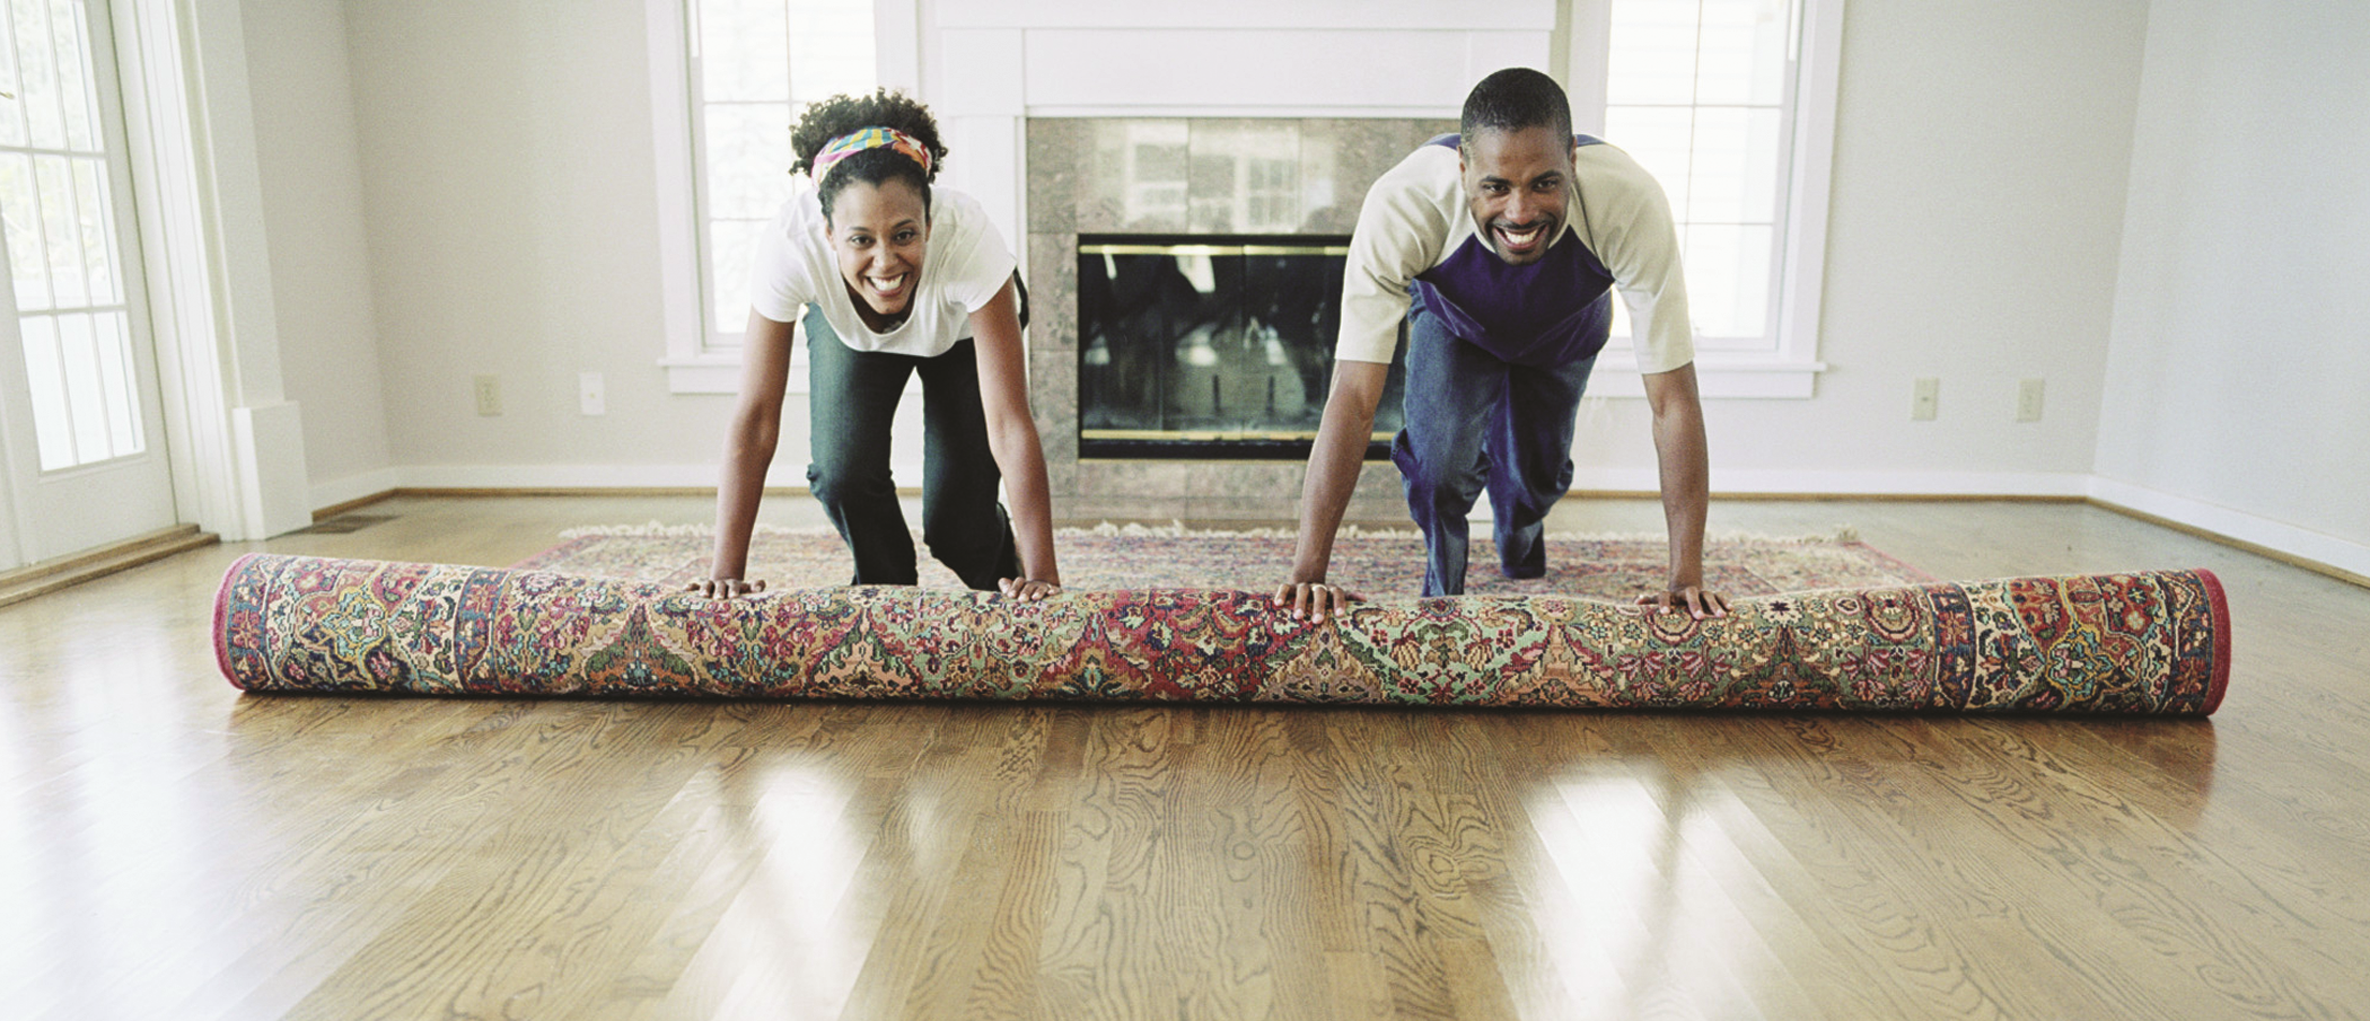 two people unrolling a carpet in a new home